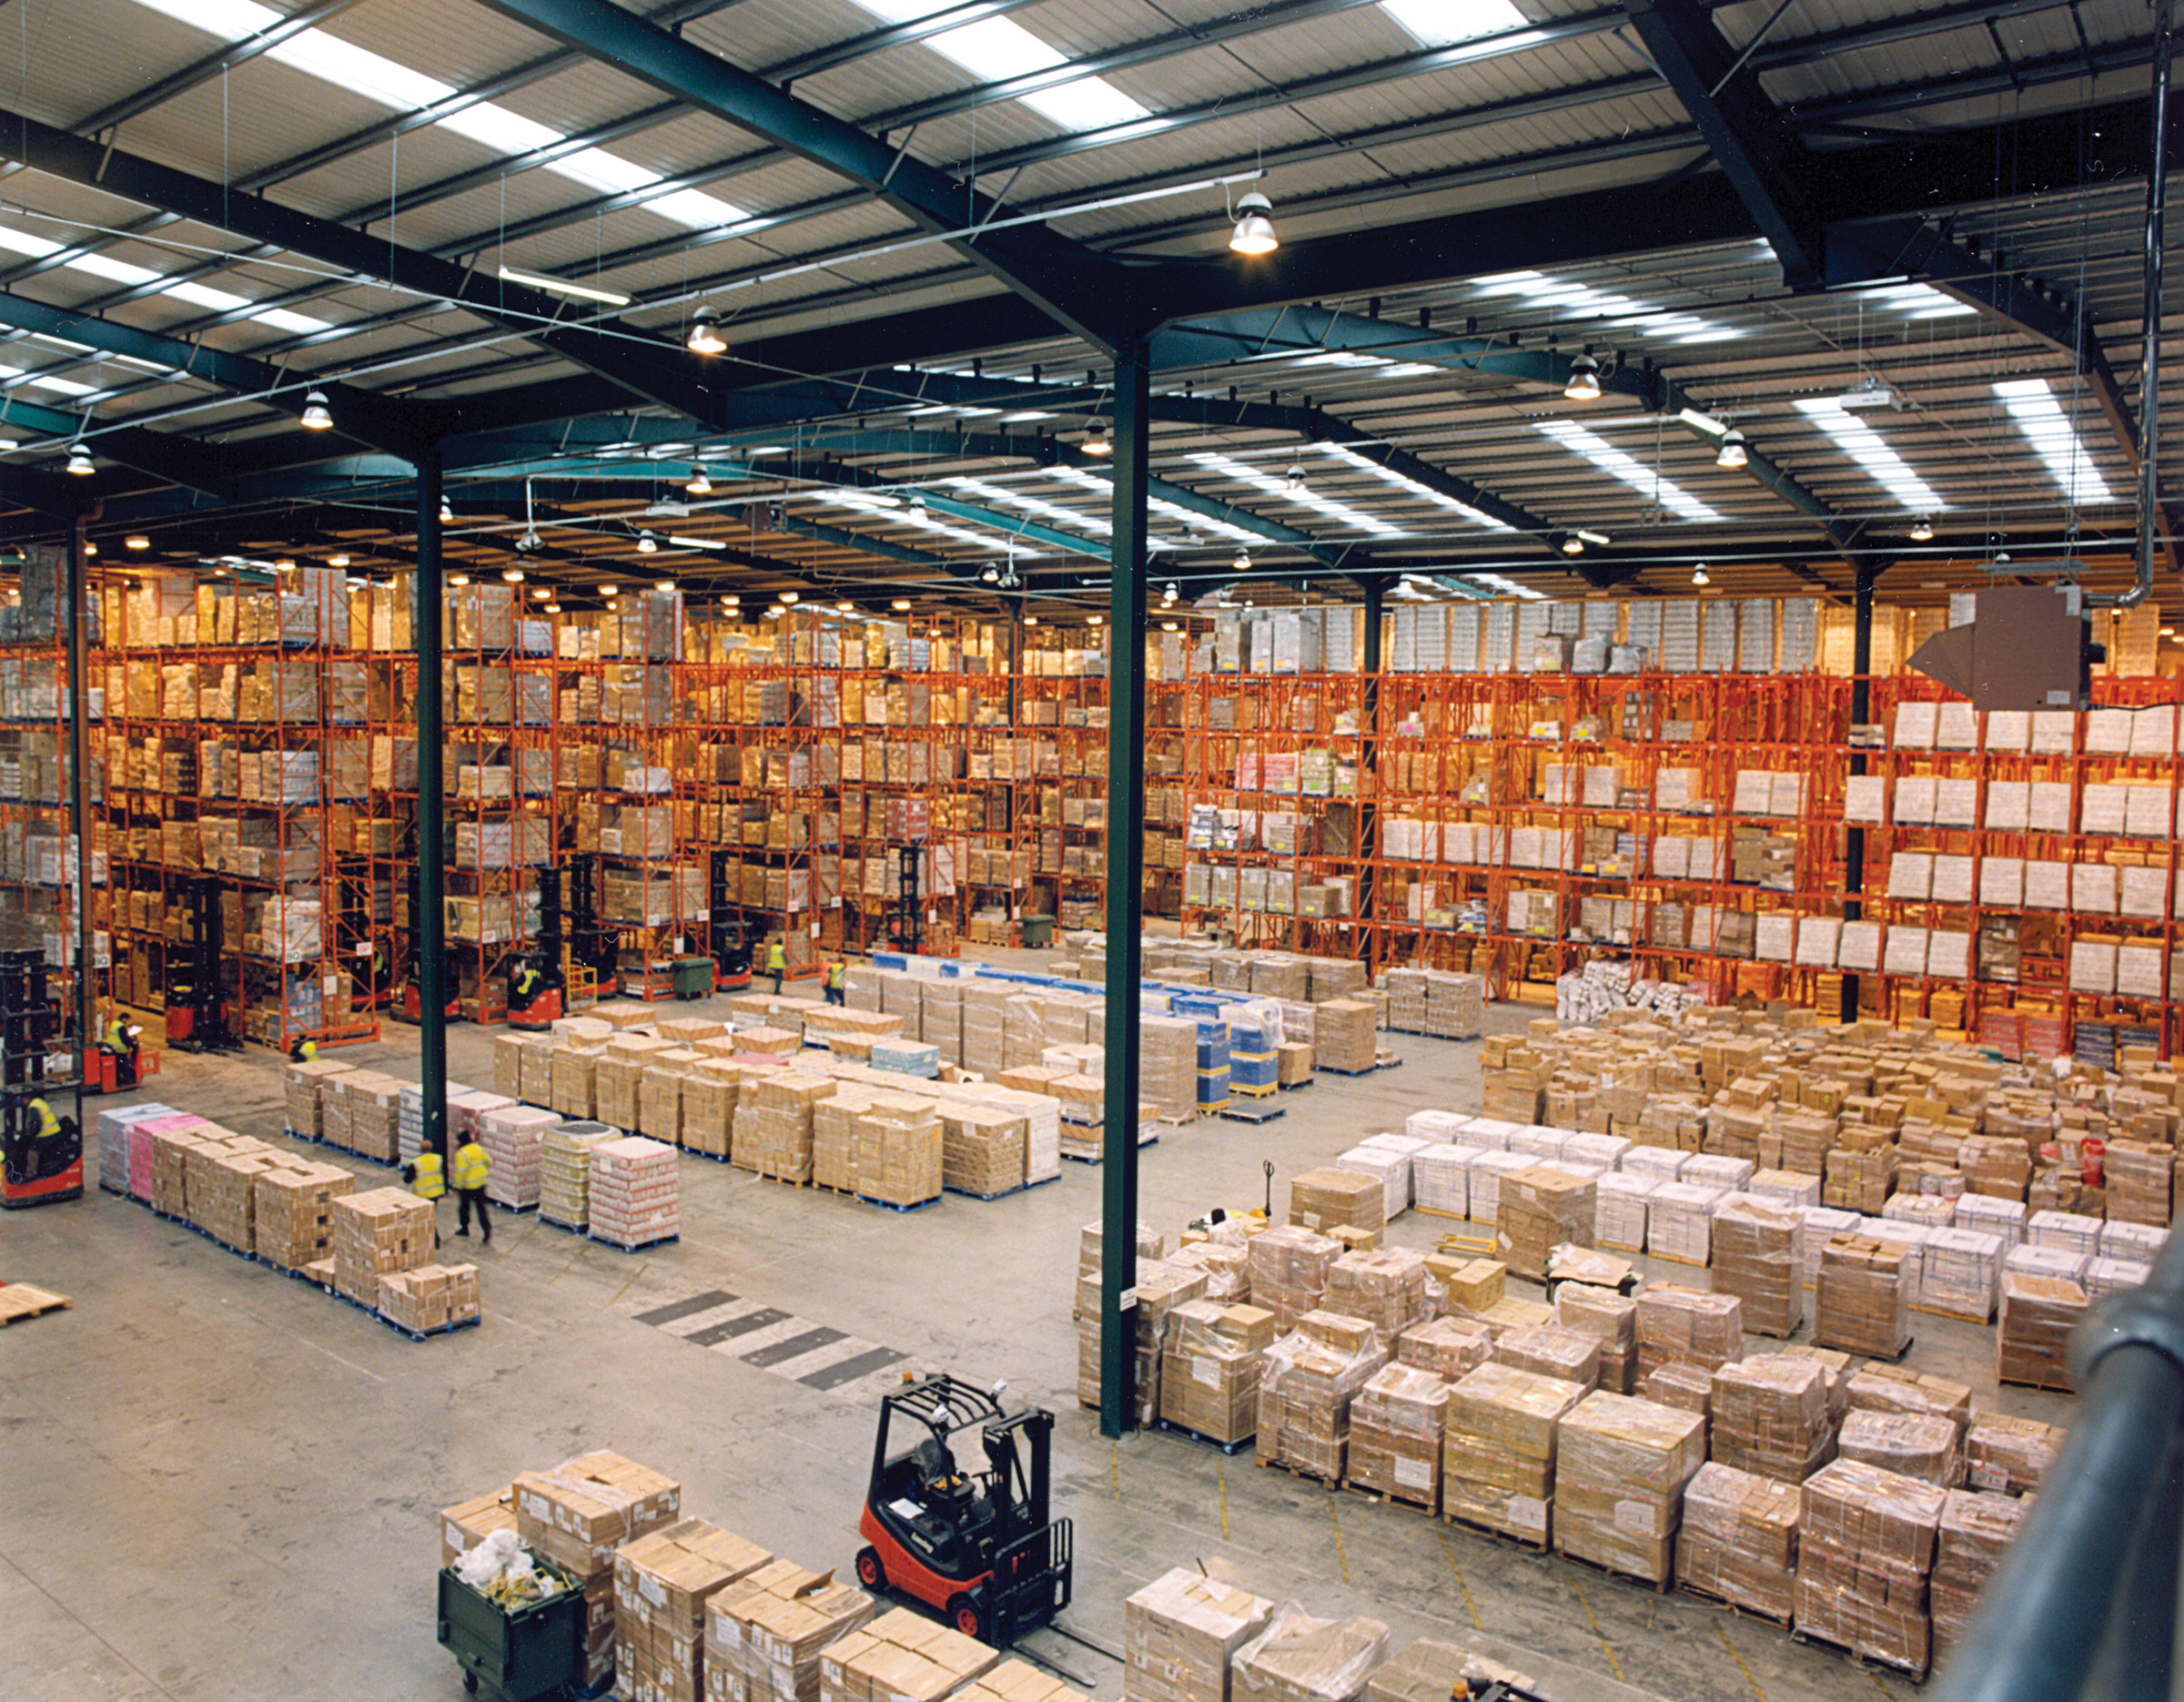 e491bcd1df357f Reducing inventory is one of the goals of lean manufacturing. In my last  post I described why we need inventory in the first place